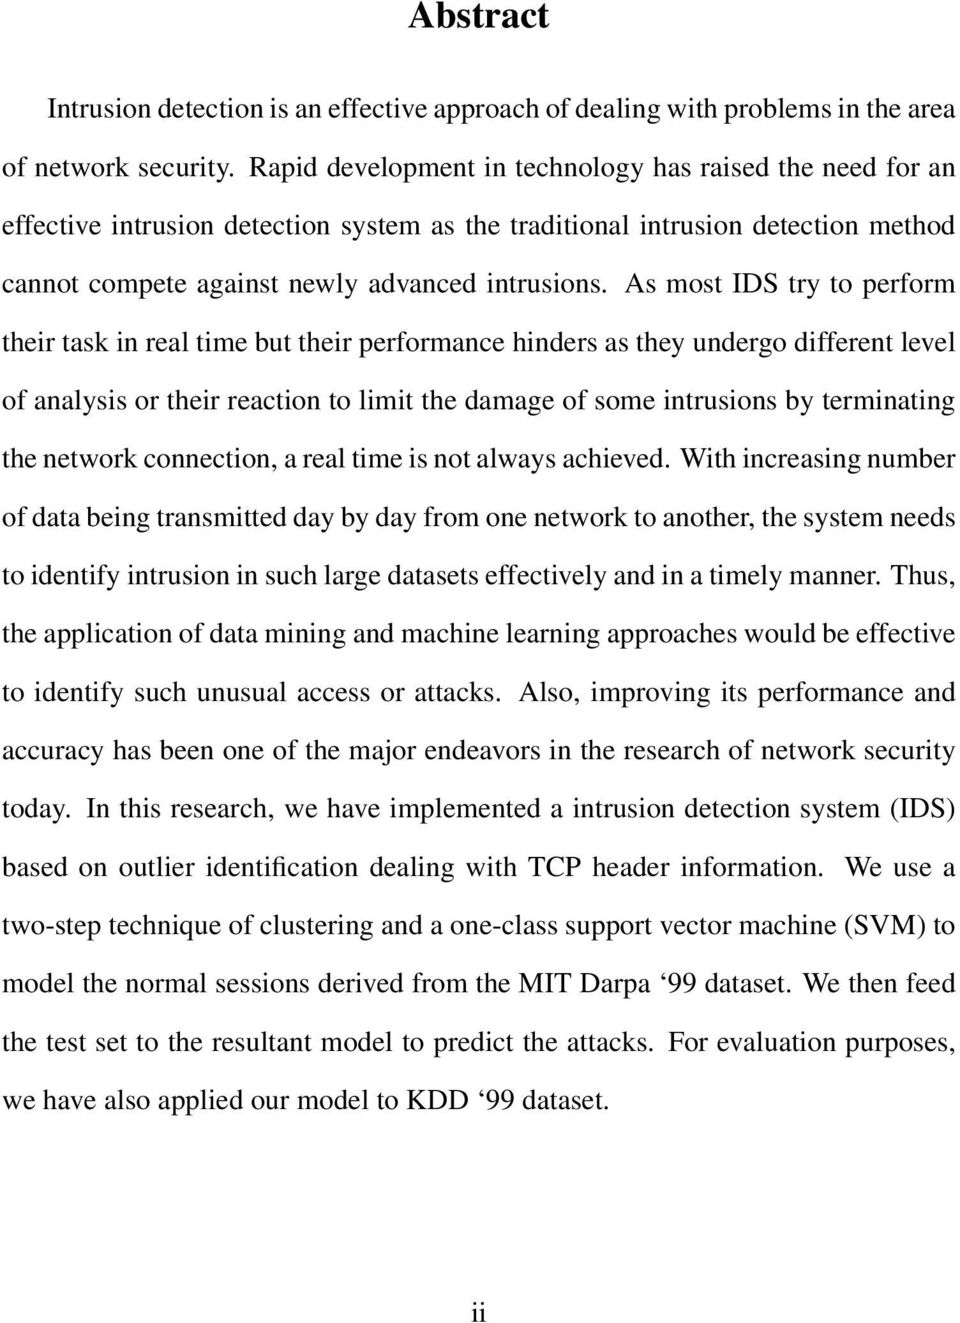 A Practical Approach to Anomaly based Intrusion Detection